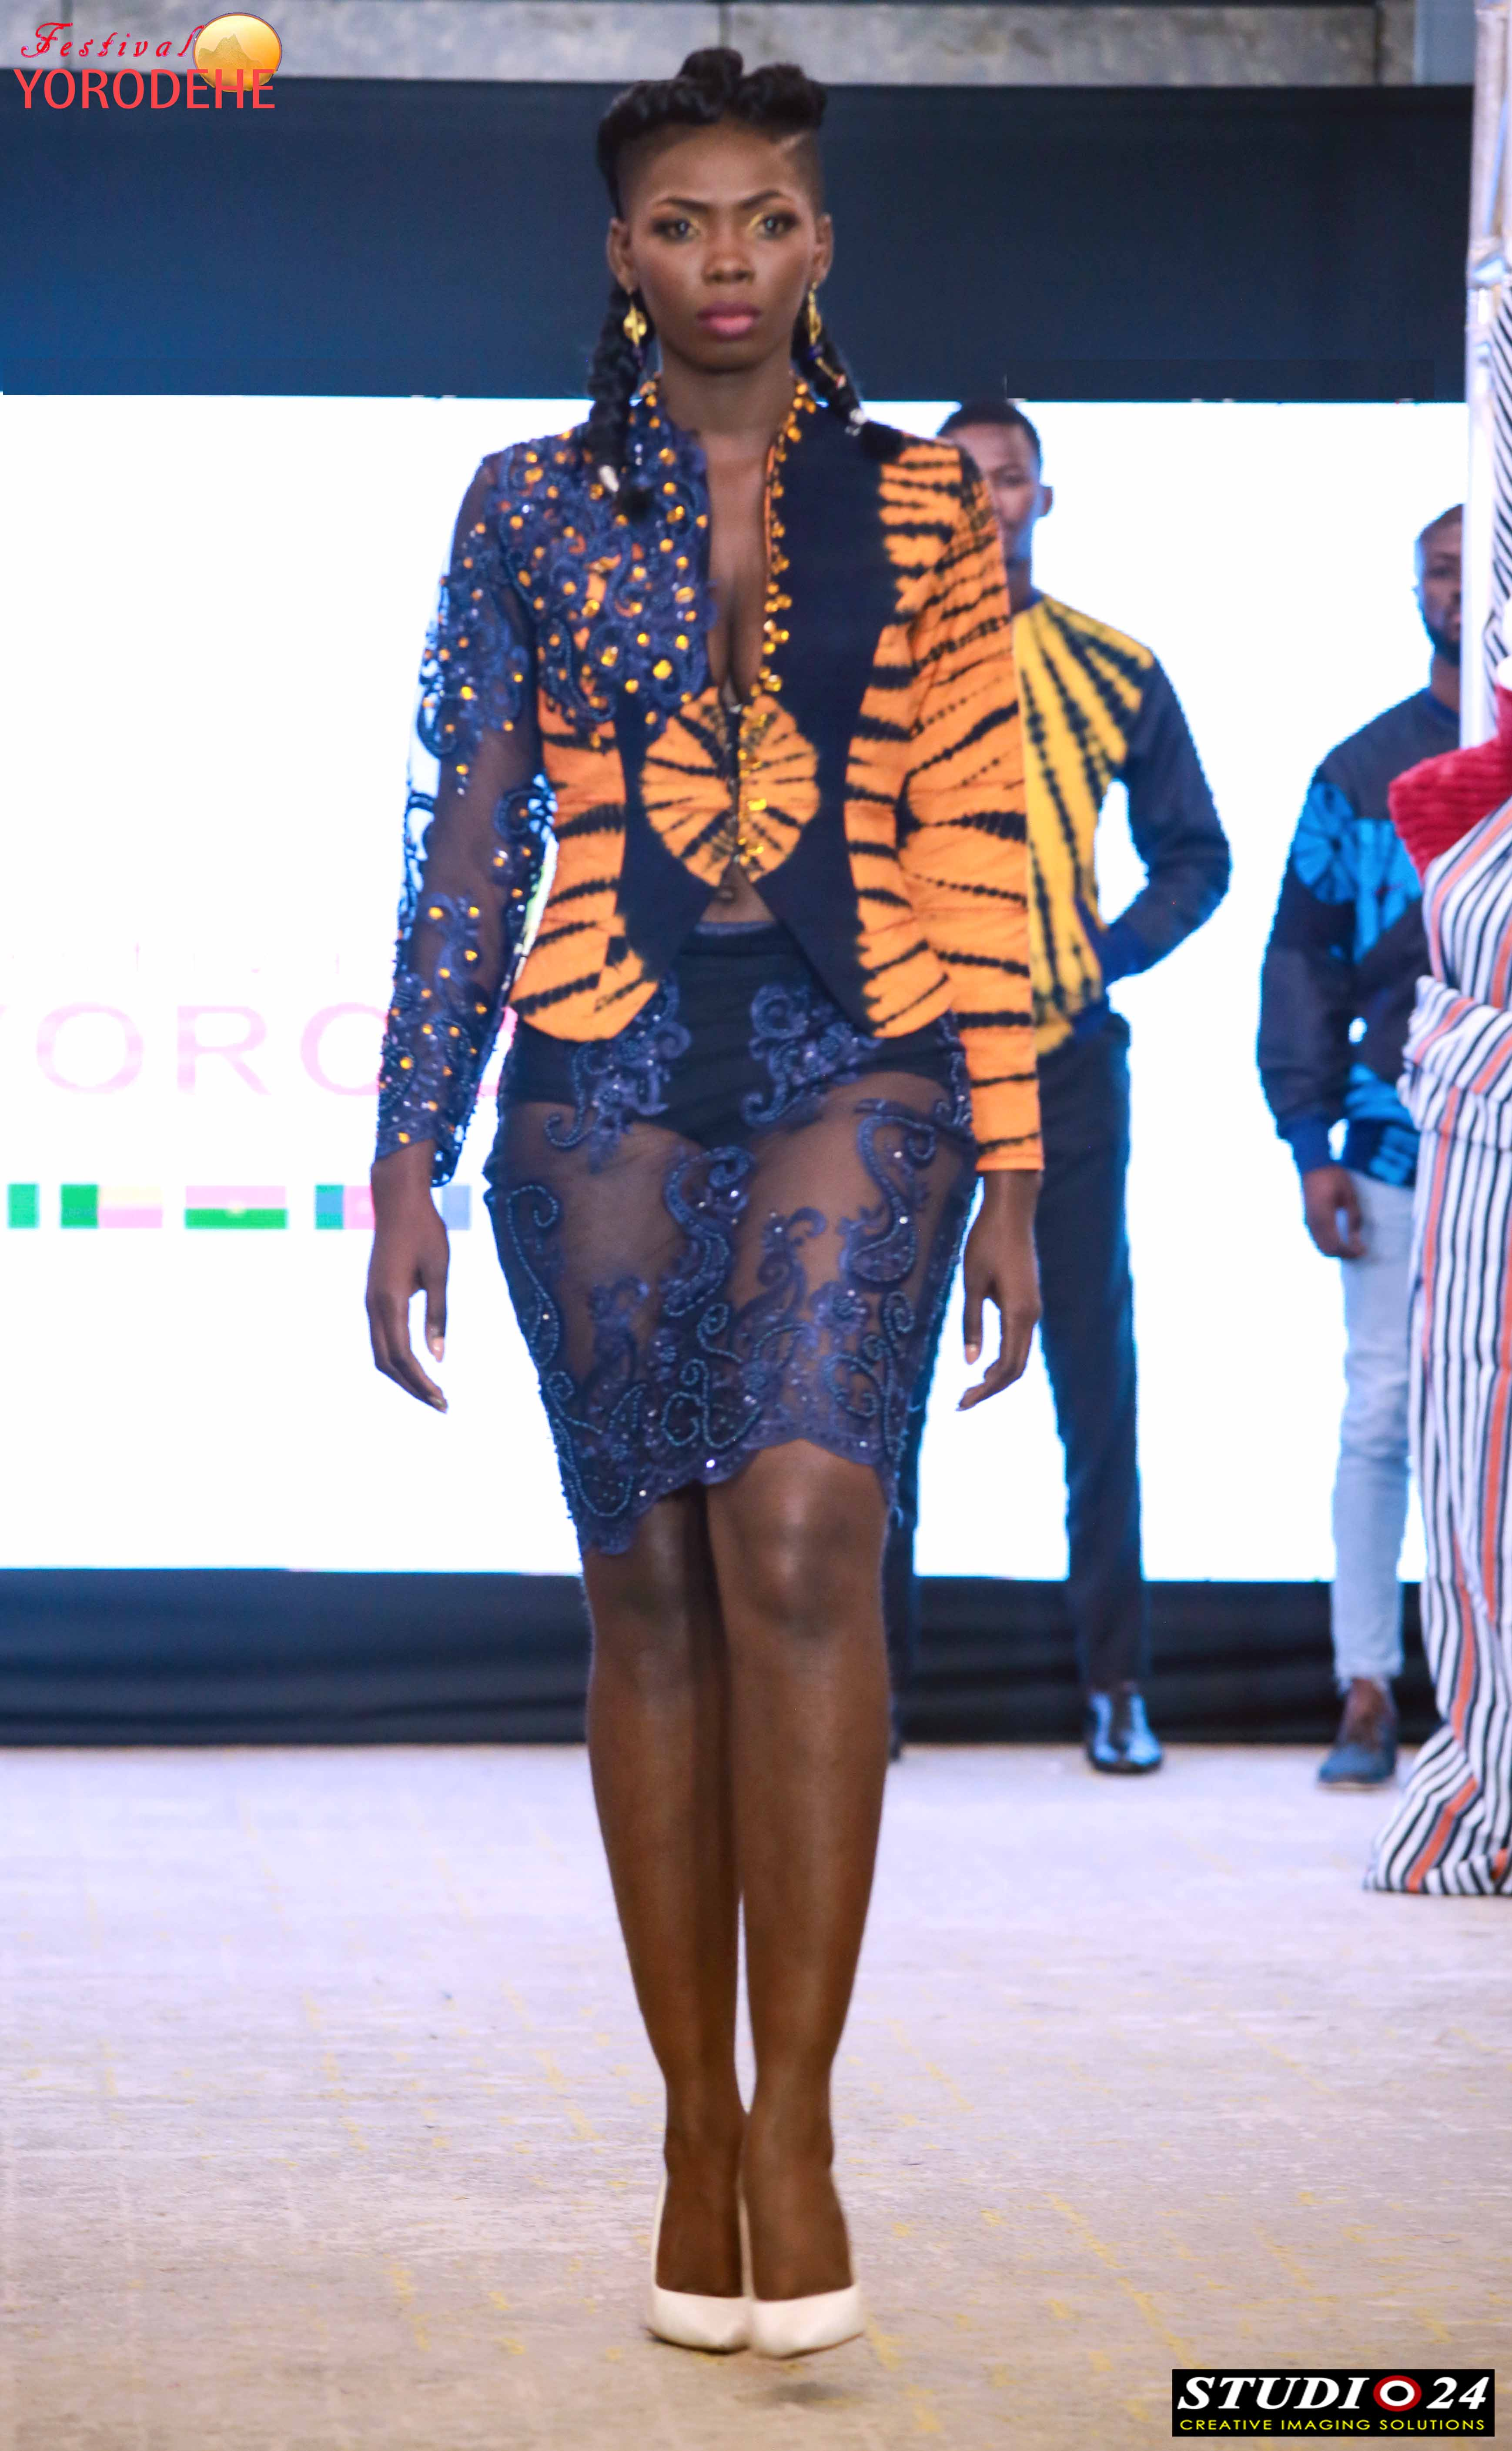 AFRICAN FASHION STYLE MAGAZINE – Yôrôdehe Festival of Pagne Tissé Organized by Patricia Ouly - Brand OulyPat Creation - The new outfits of Patricia Ouly, call Signature - Model Bibata SAWADOGO - Photographer DAN NGU - Official Media Partner DN AFRICA - STUDIO 24 NIGERIA - STUDIO 24 INTERNATIONAL - Ifeanyi Christopher Oputa MD AND CEO OF COLVI LIMITED AND STUDIO 24 - CHEVEUX CHERIE AFRICAN FASHION STYLE MAGAZINE – Yôrôdehe Festival of Pagne Tissé - Patricia Ouly - Brand OulyPat Creation - The outfits of '' Signature '', the new collection of Patricia Ouly - Model Lara BROU- Photographer DAN NGU - Official Media Partner DN AFRICA - STUDIO 24 NIGERIA - STUDIO 24 INTERNATIONAL - Ifeanyi Christopher Oputa MD AND CEO OF COLVI LIMITED AND STUDIO 24 - CHEVEUX CHERIE and CHEVEUX CHERIE STUDIO BY MARIEME DUBOZ- Fashion Editor Nahomie NOOR COULIBALY